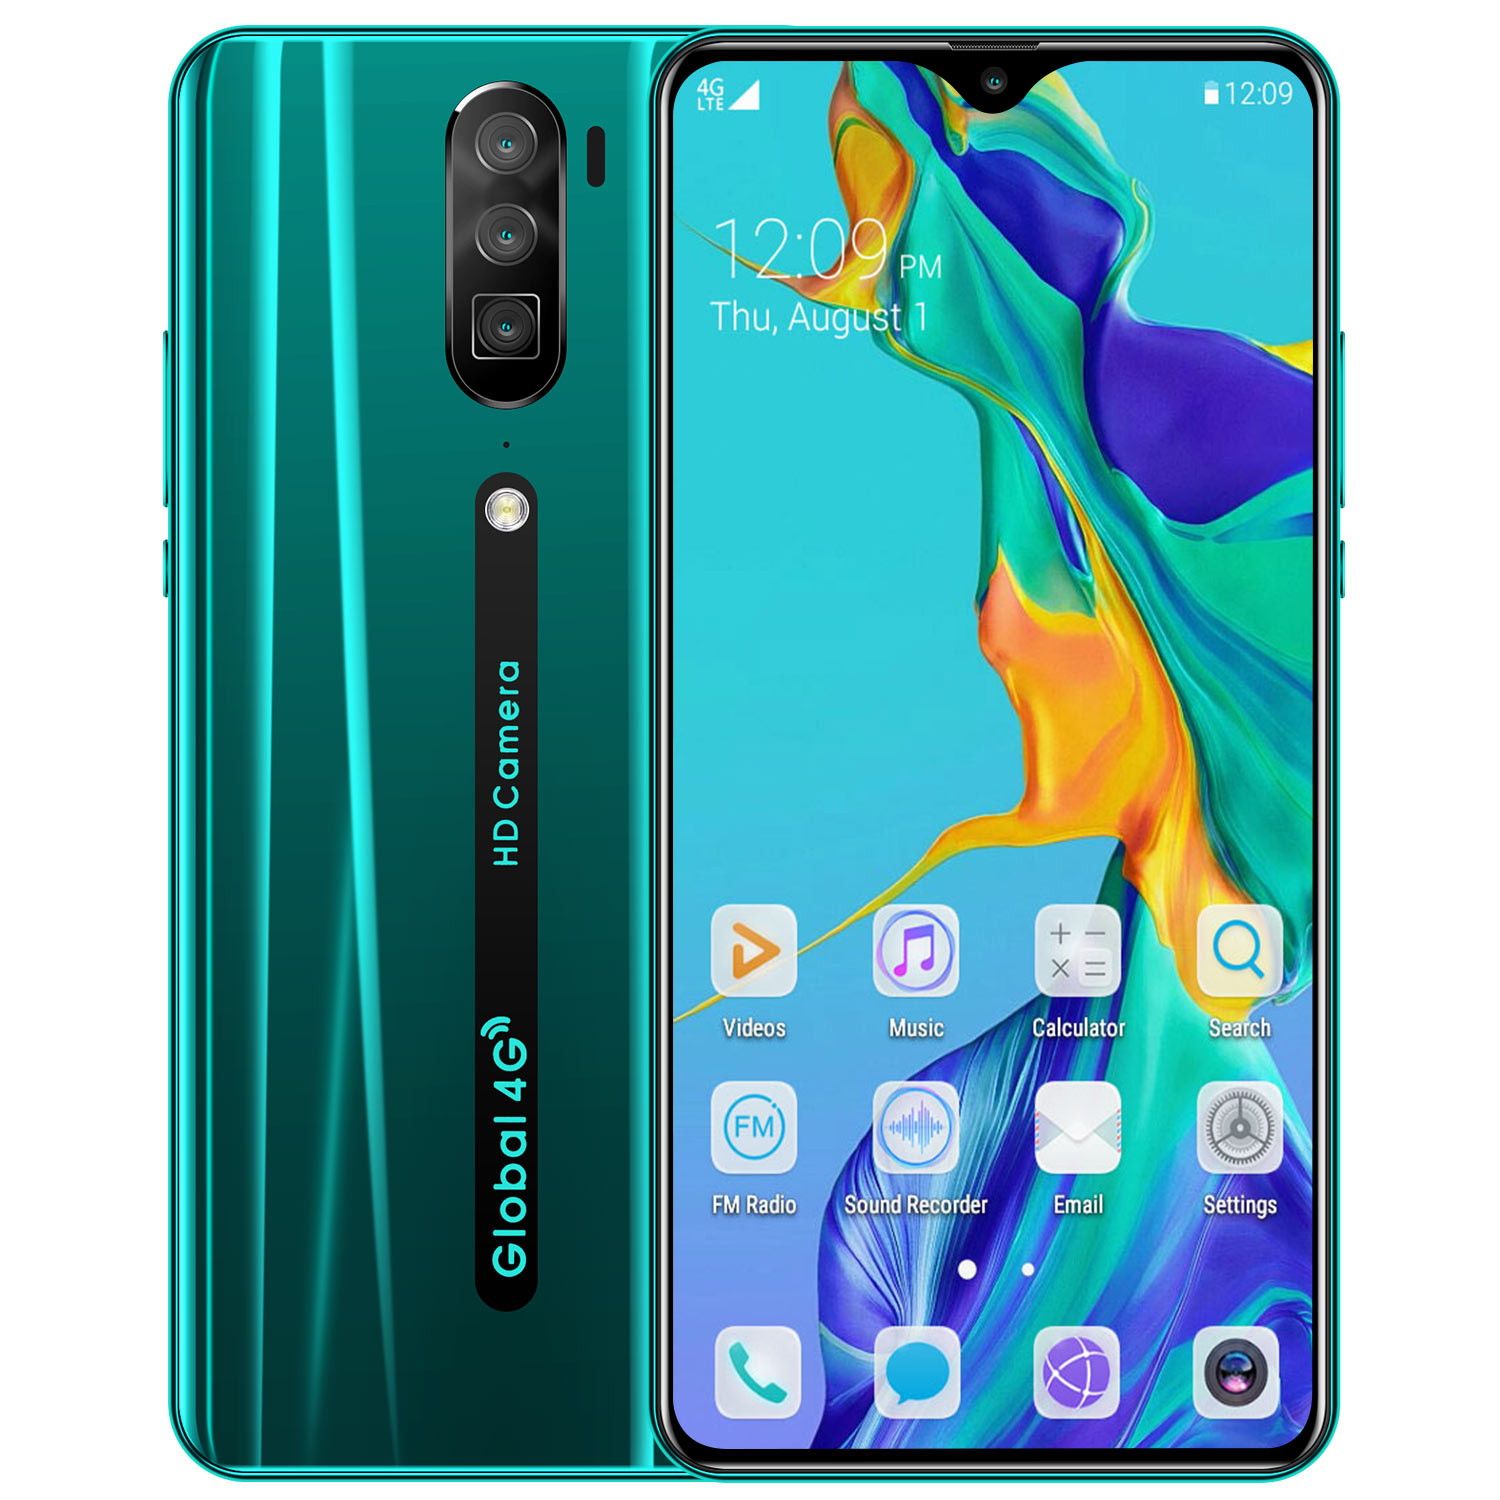 6.3inch RINO Smartphone HD Screen 8G RAM+128GB ROM Memory 8MP+16MP Camero 4800mAh Battery Support Face Recognition Fingerprint Unlock green_U.S. regulations